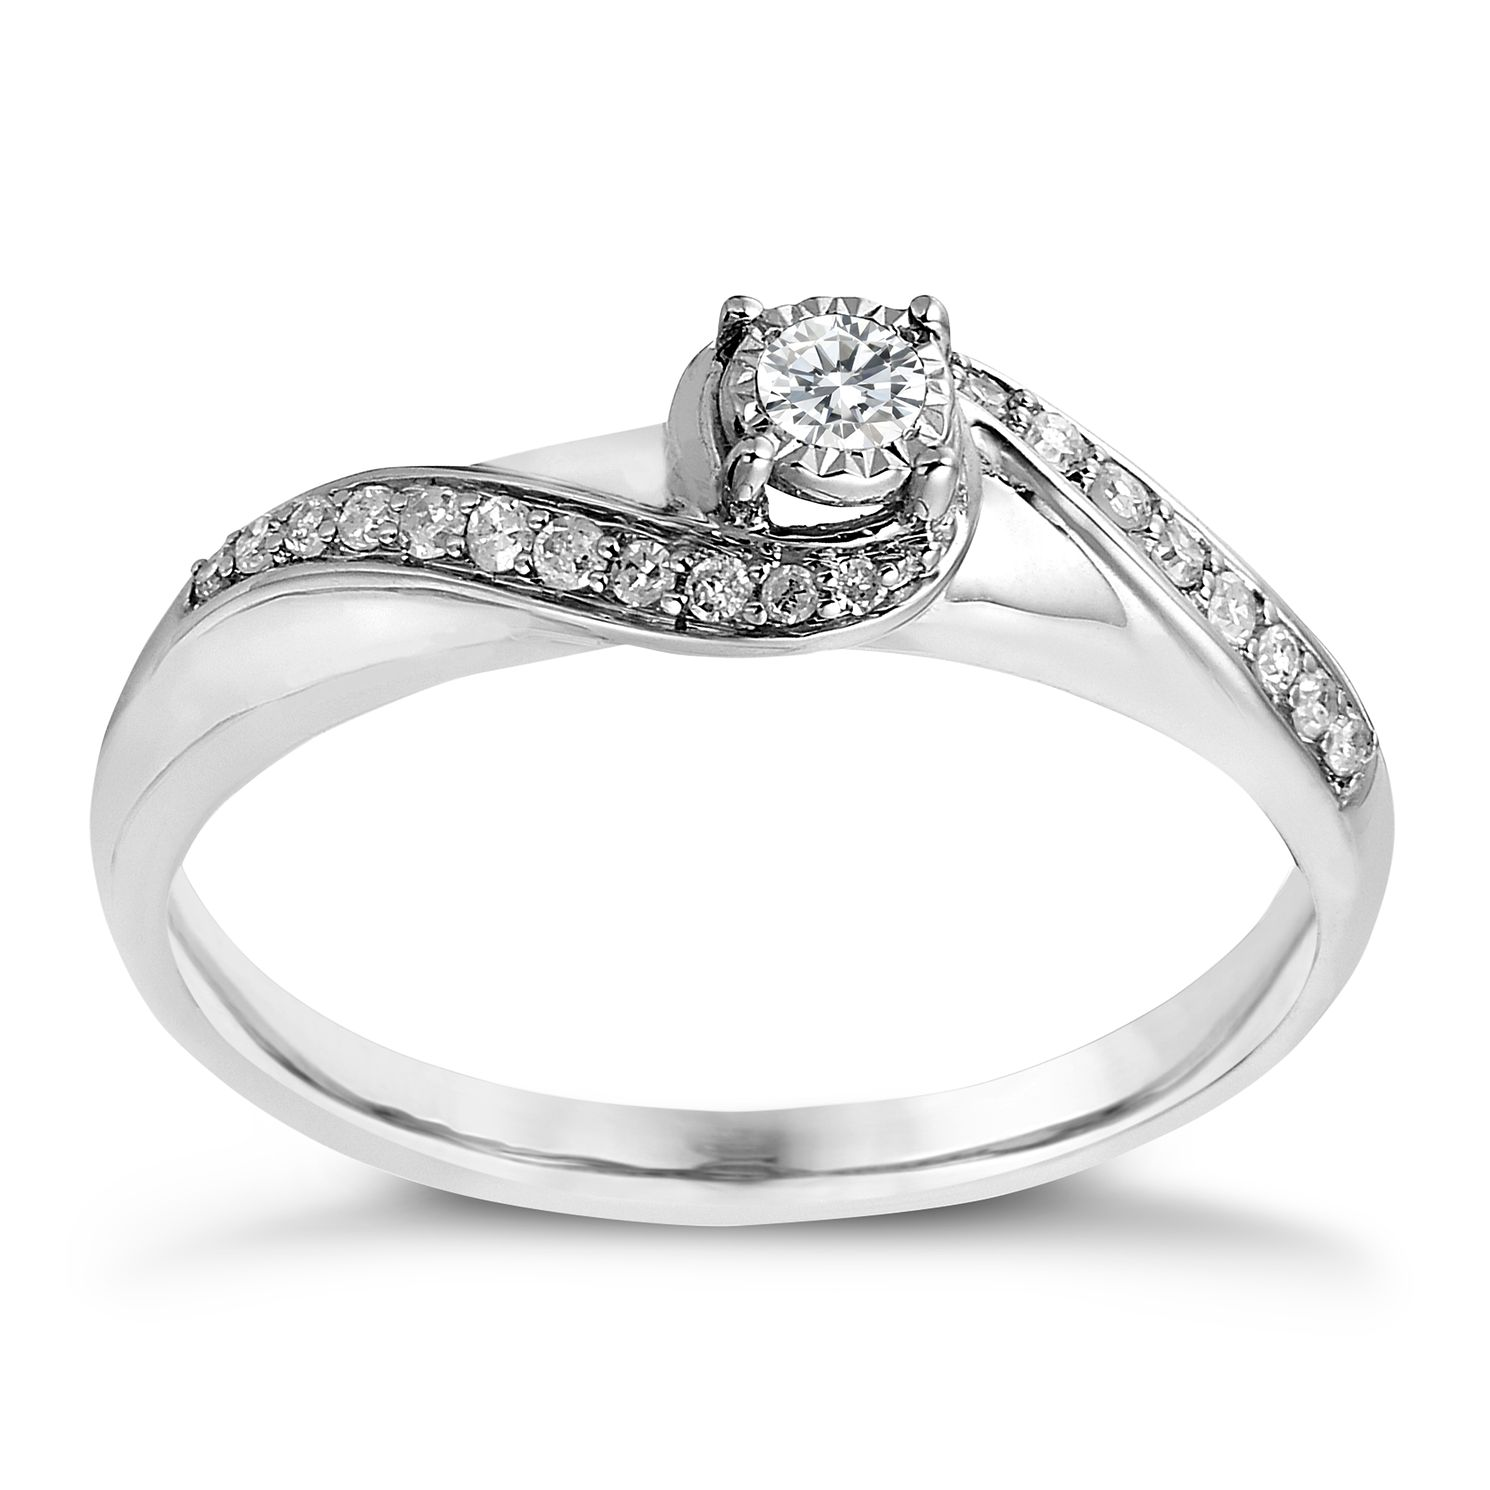 solitaire ring excellent diamond white f round gold carat prong itm jewellery cut